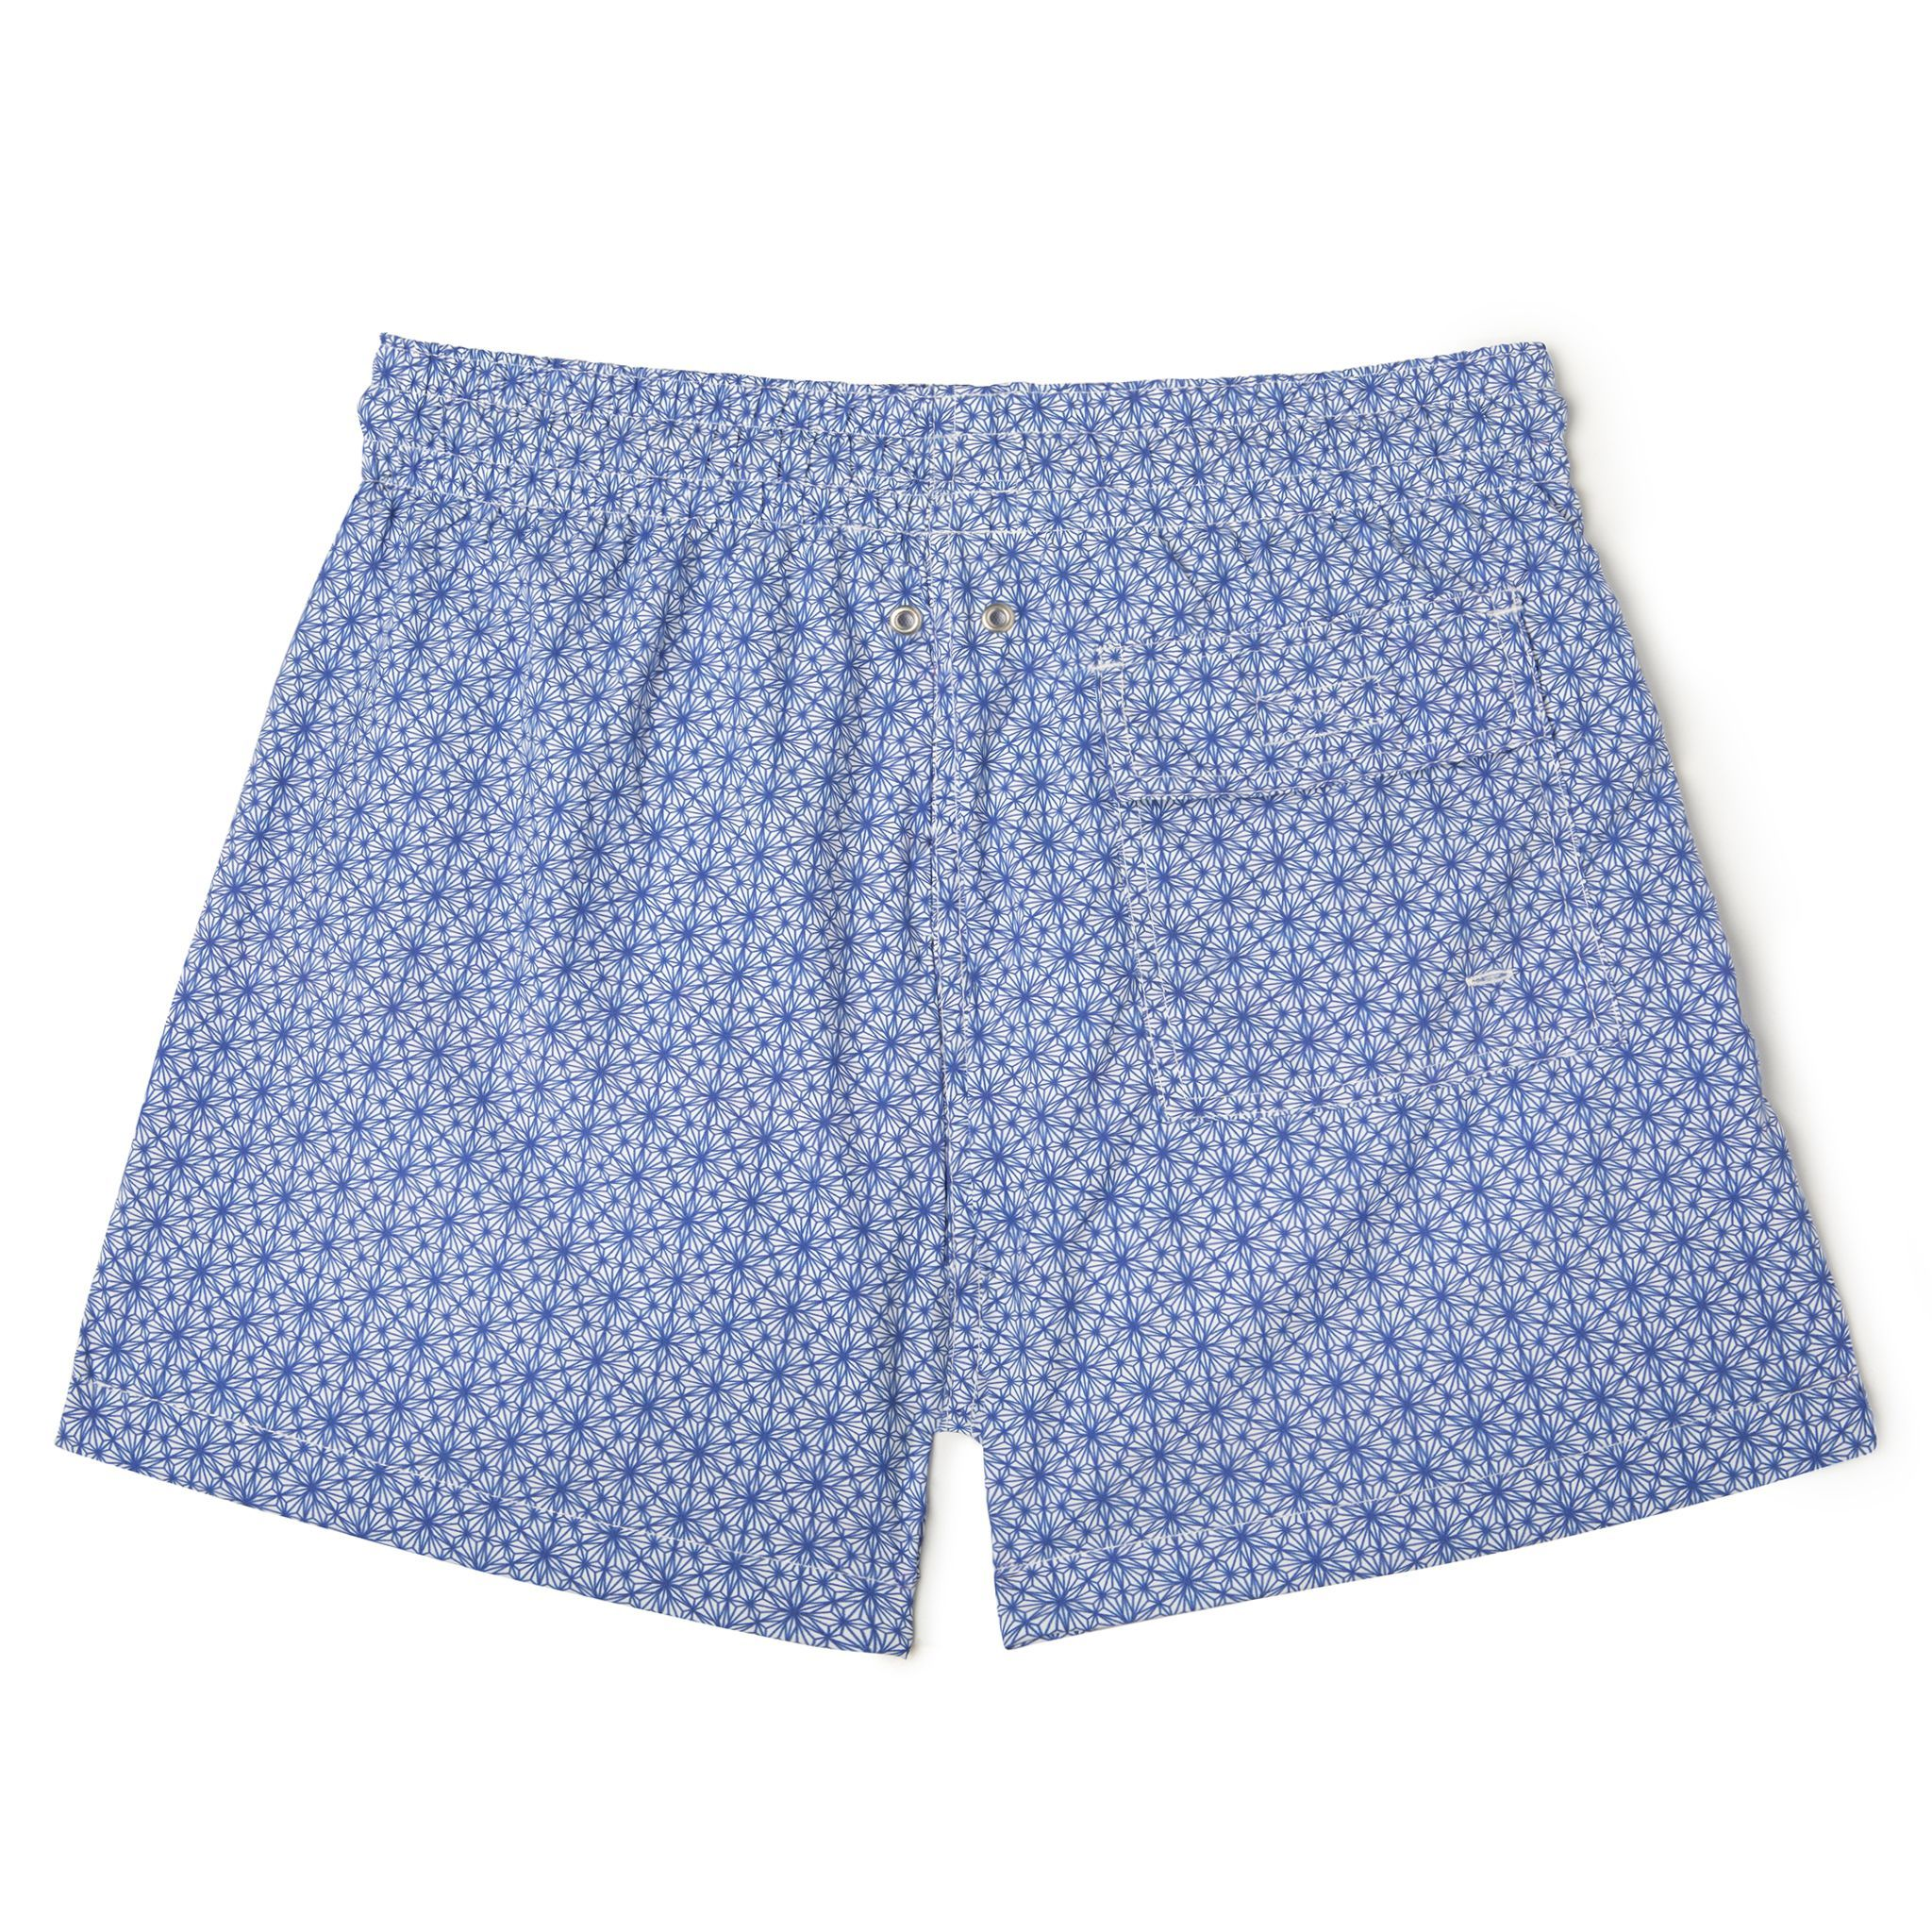 Short-Length Swim Shorts Blue on White Trochutmetrics